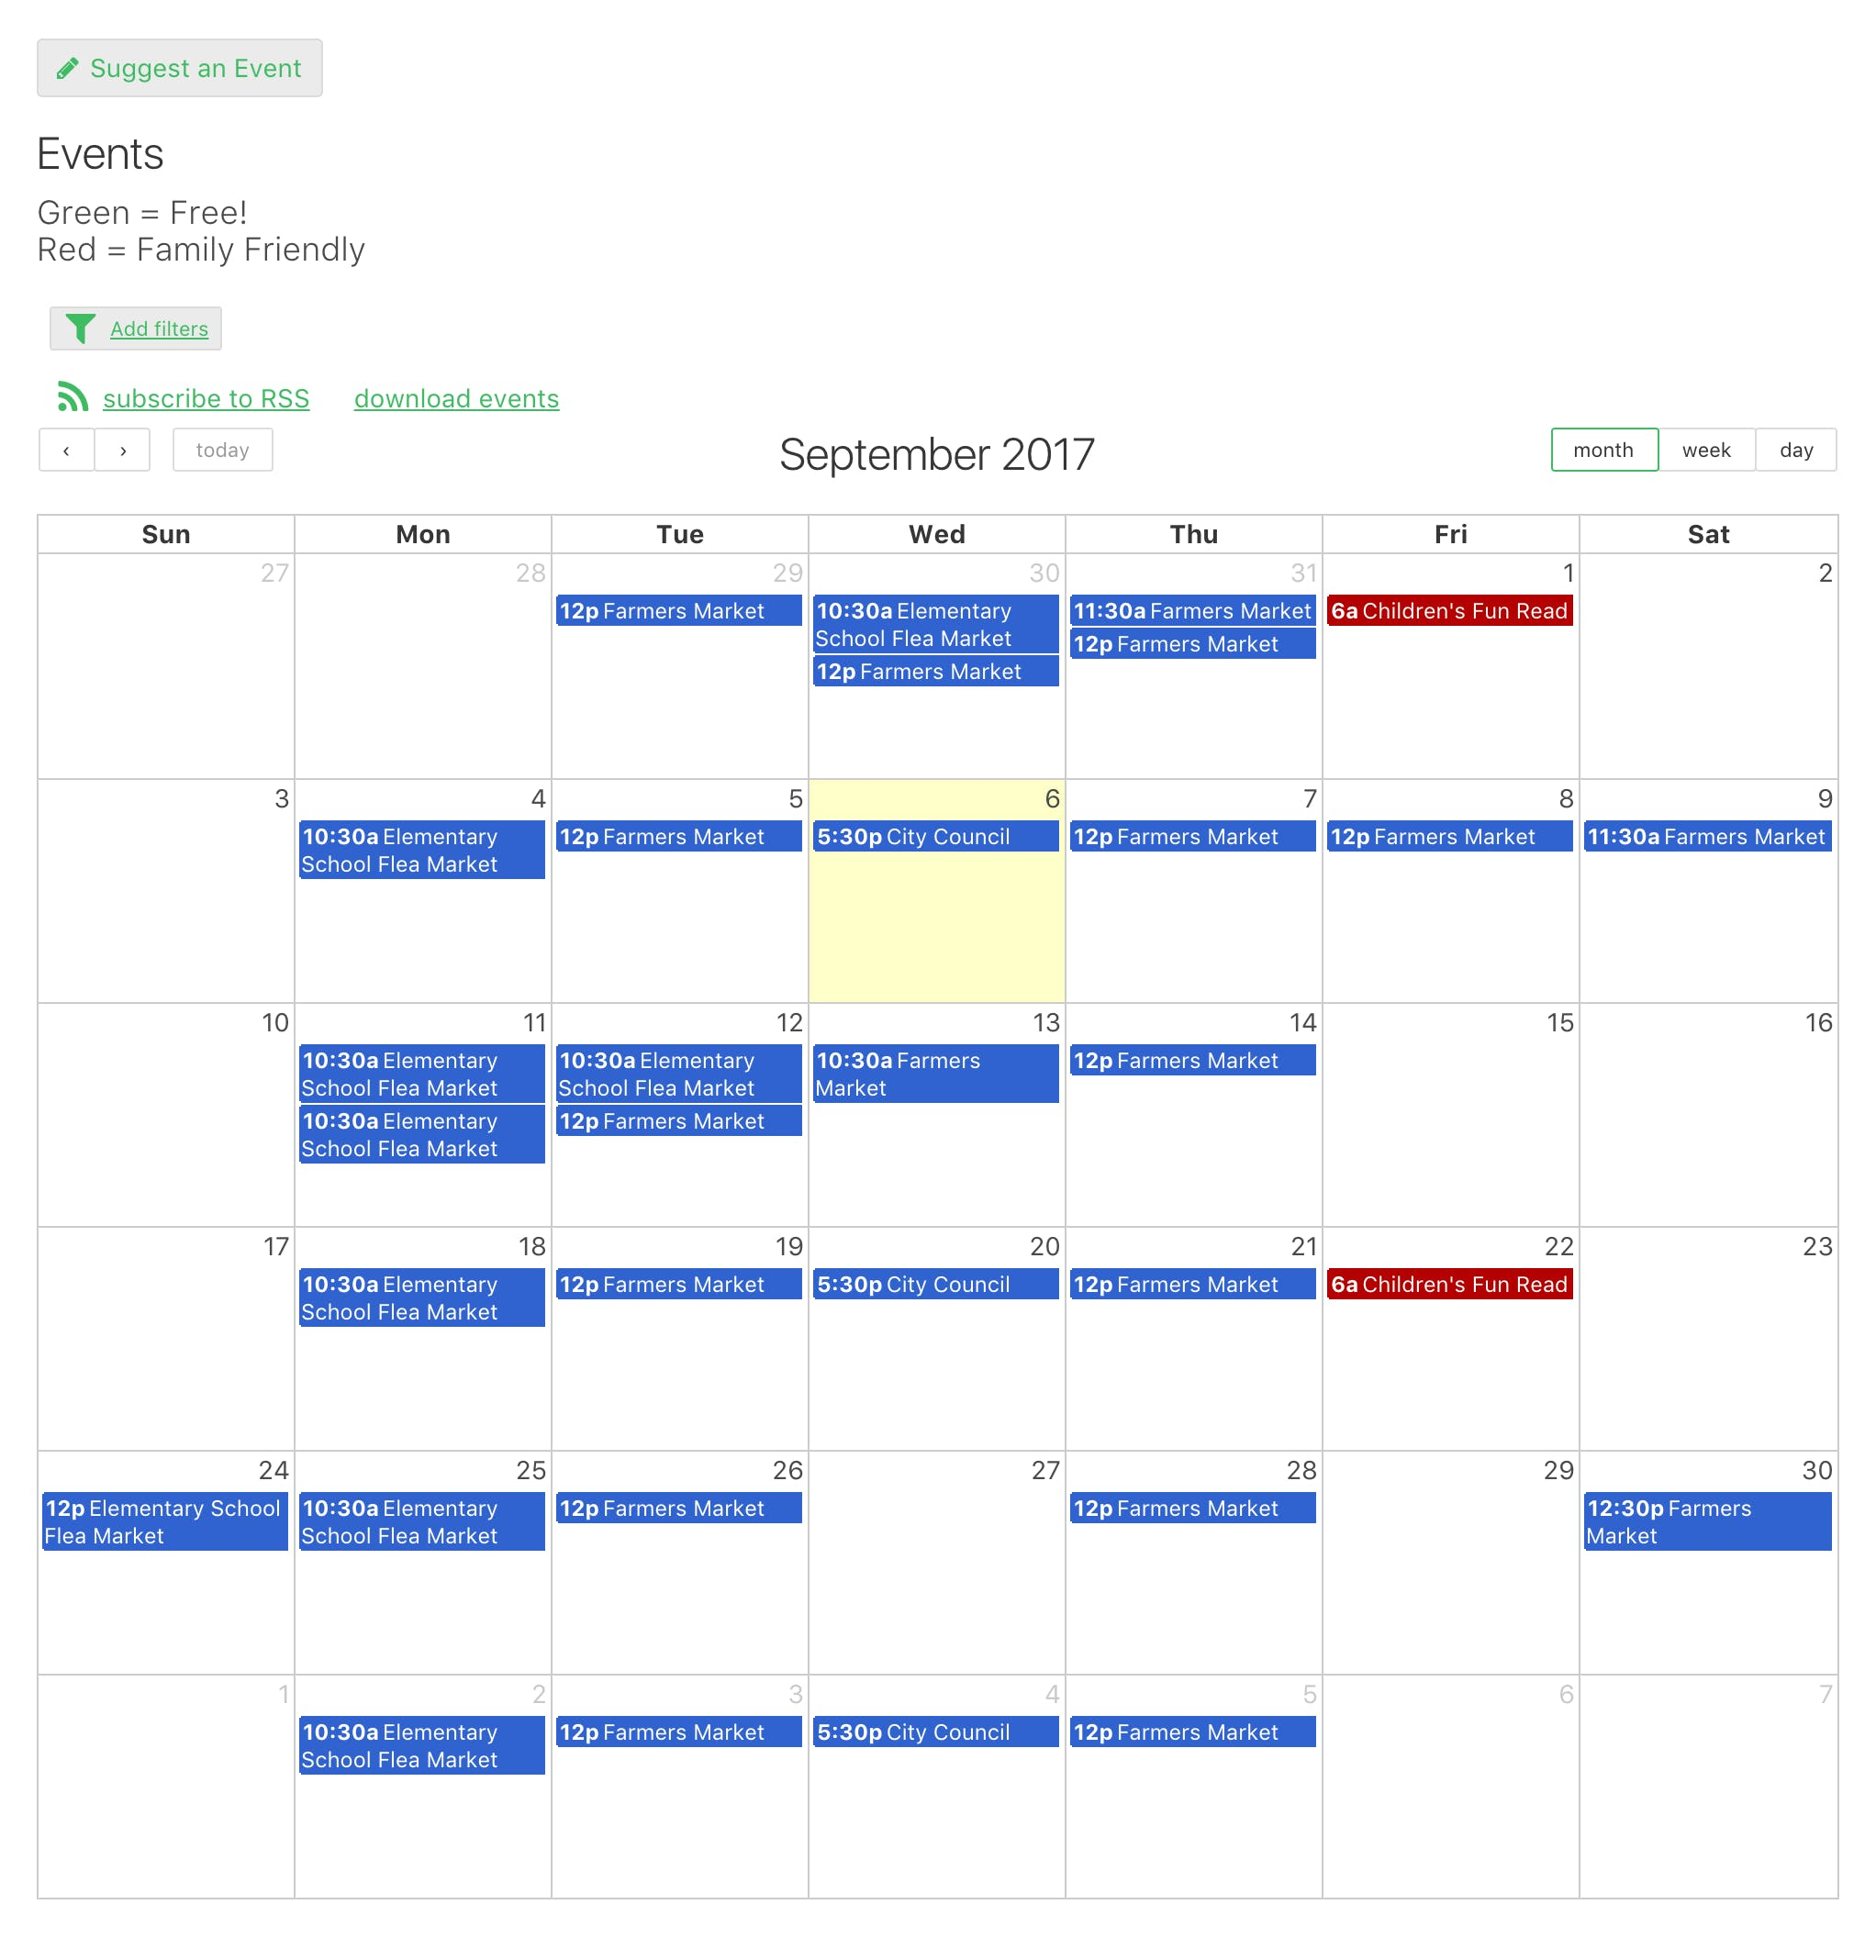 The public calendar can be viewed right from your own website with categorized and color coded events. The community can recommend events to add.